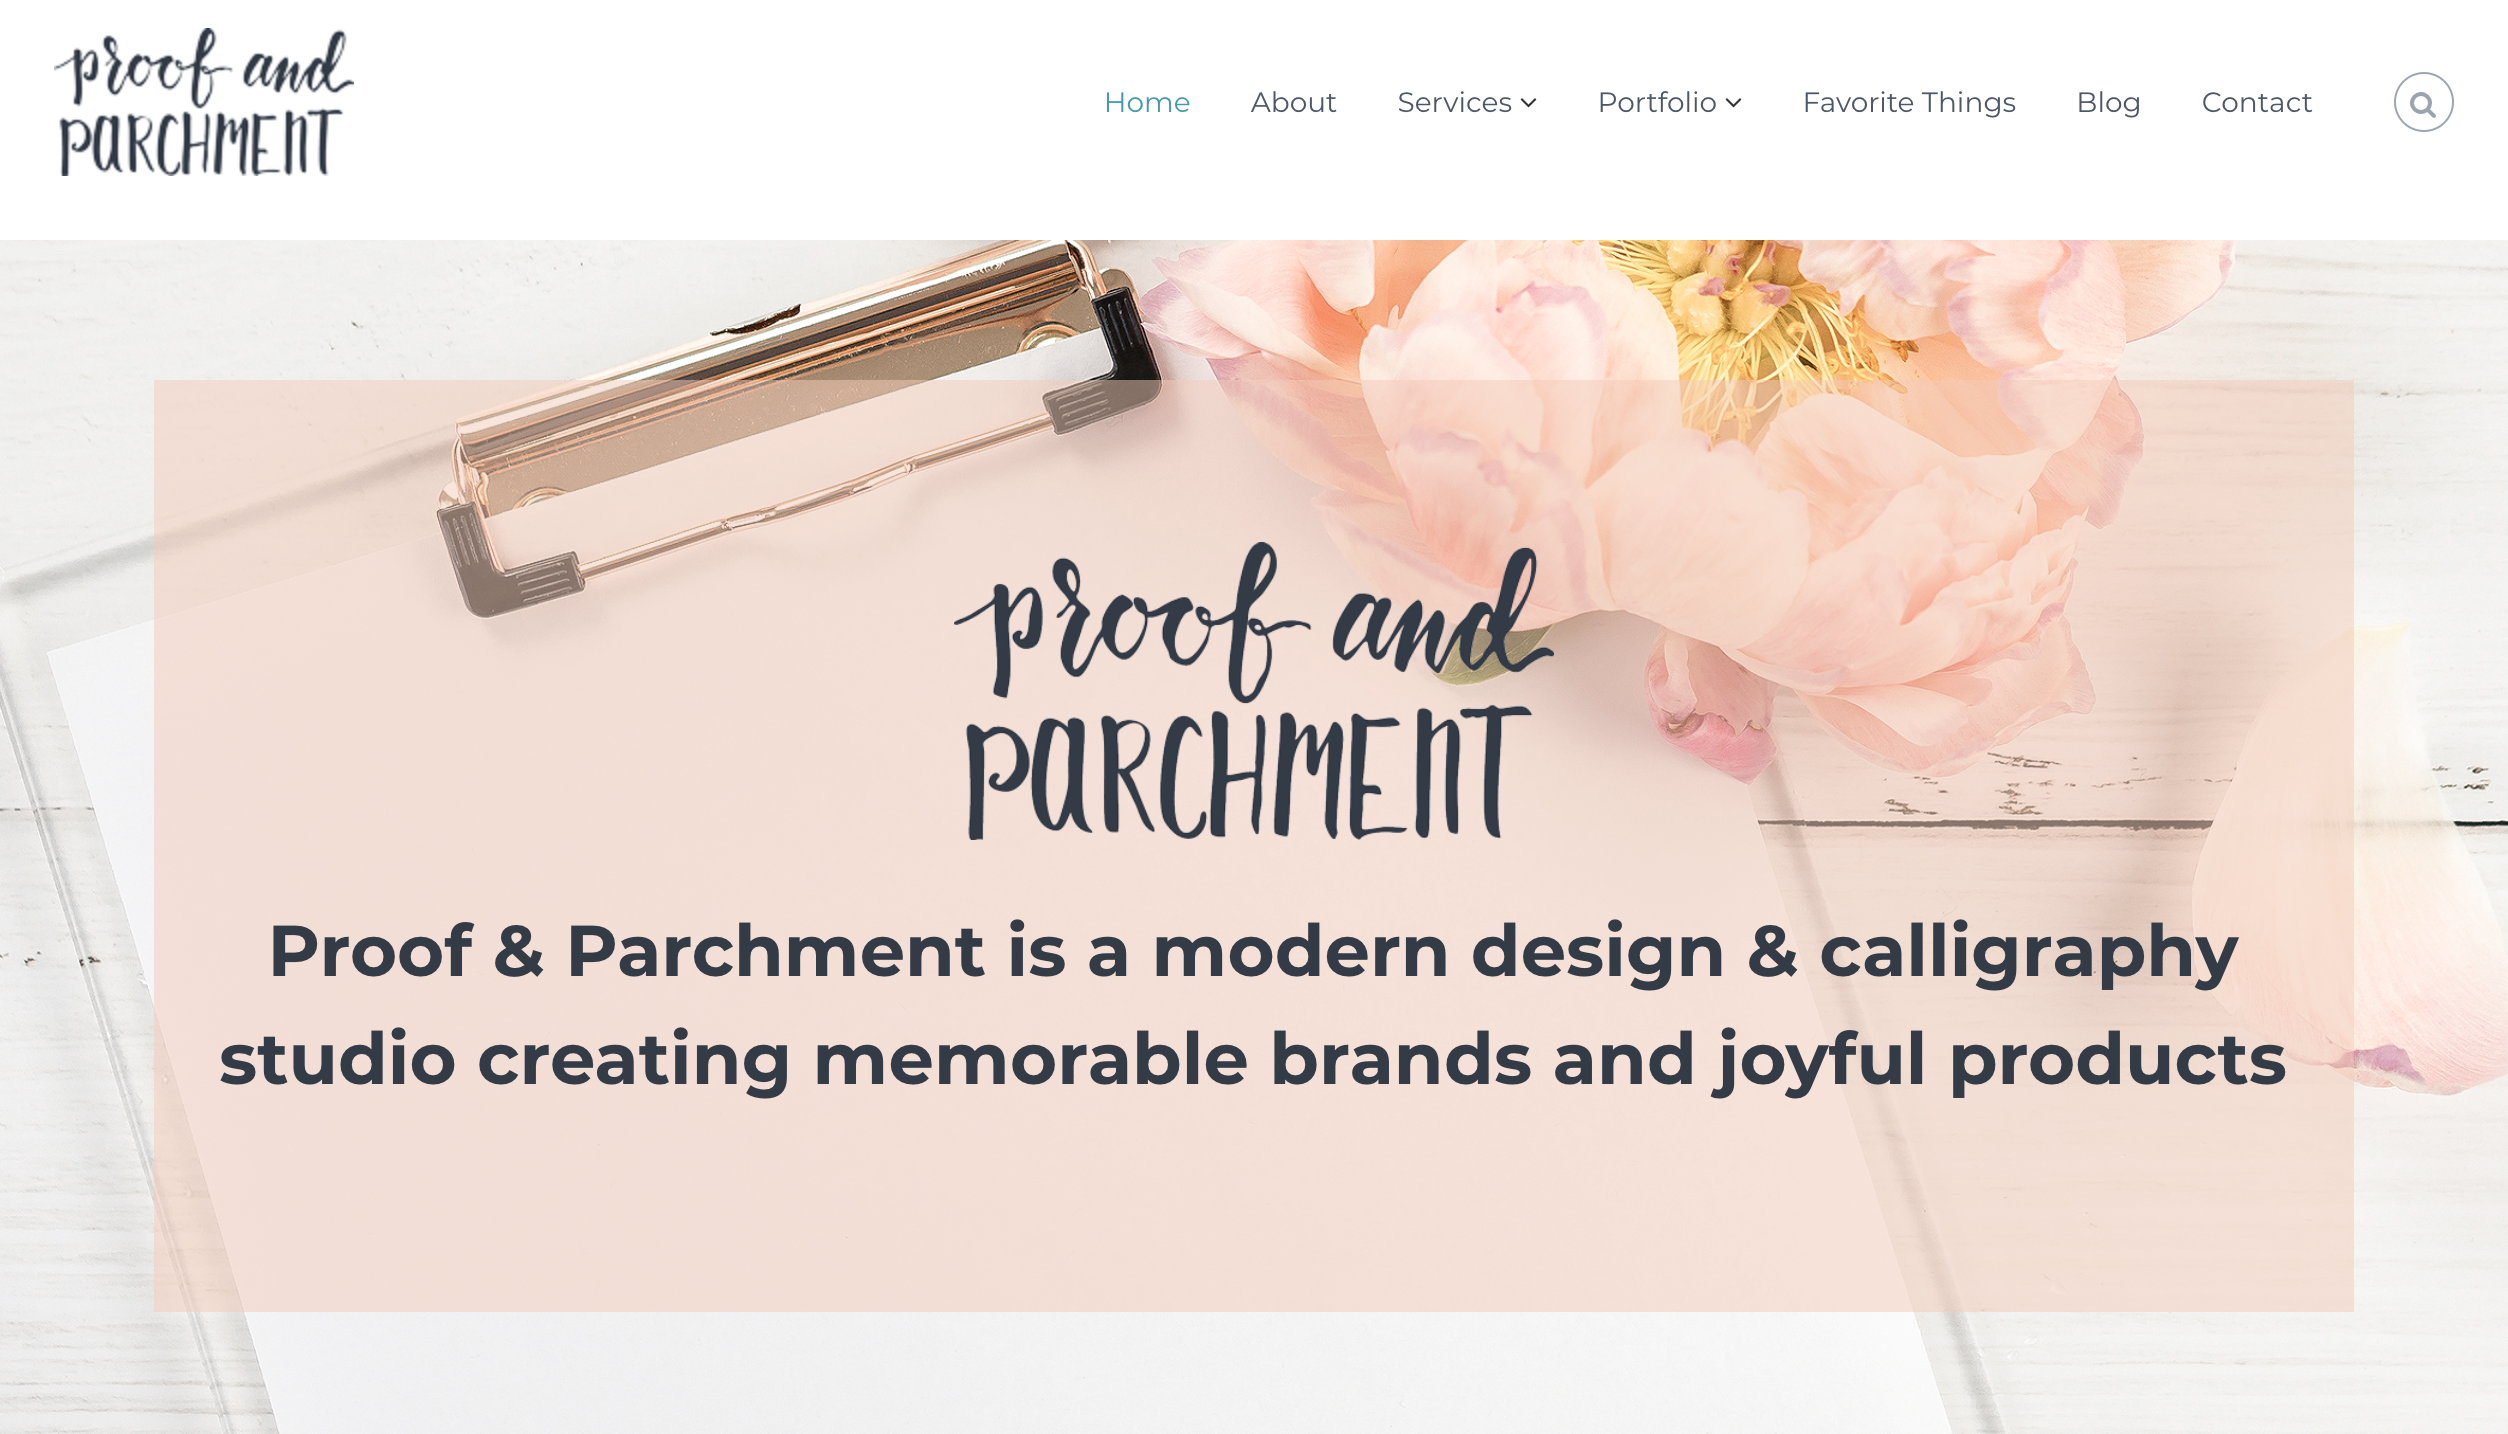 Joyful Week at Proof & Parchment no. 13: Proof & Parchment Homepage Refresh